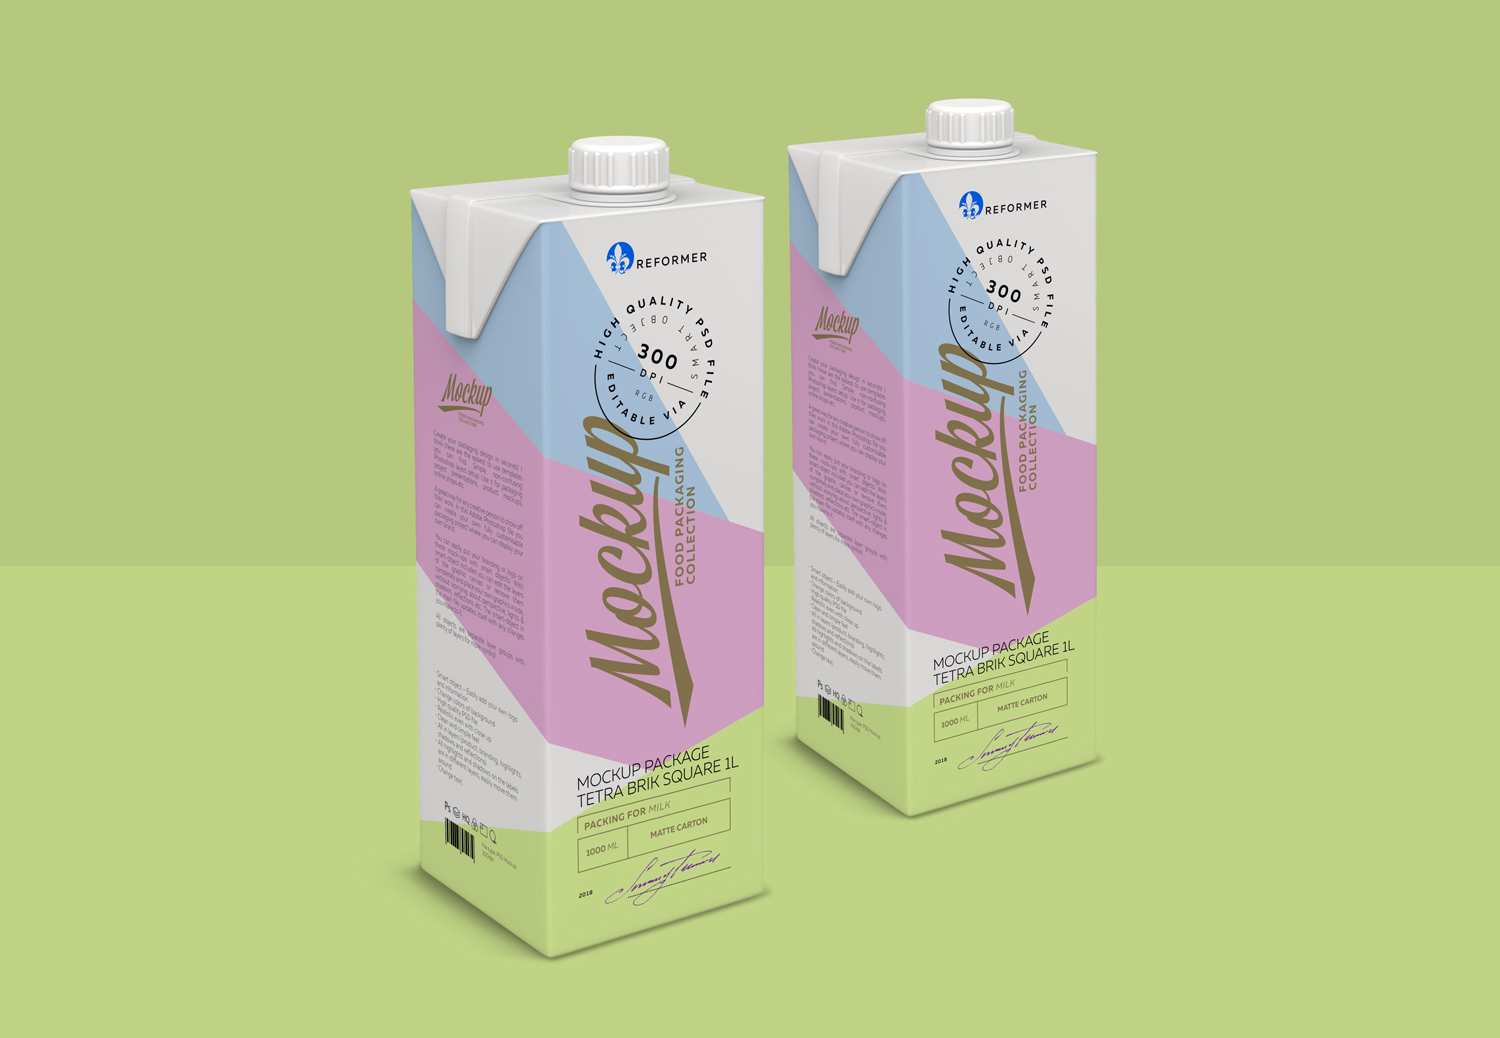 Free-Milk-Box-Packaging-Tetra-Brik-Square-1l-Mockup-PSD-2018